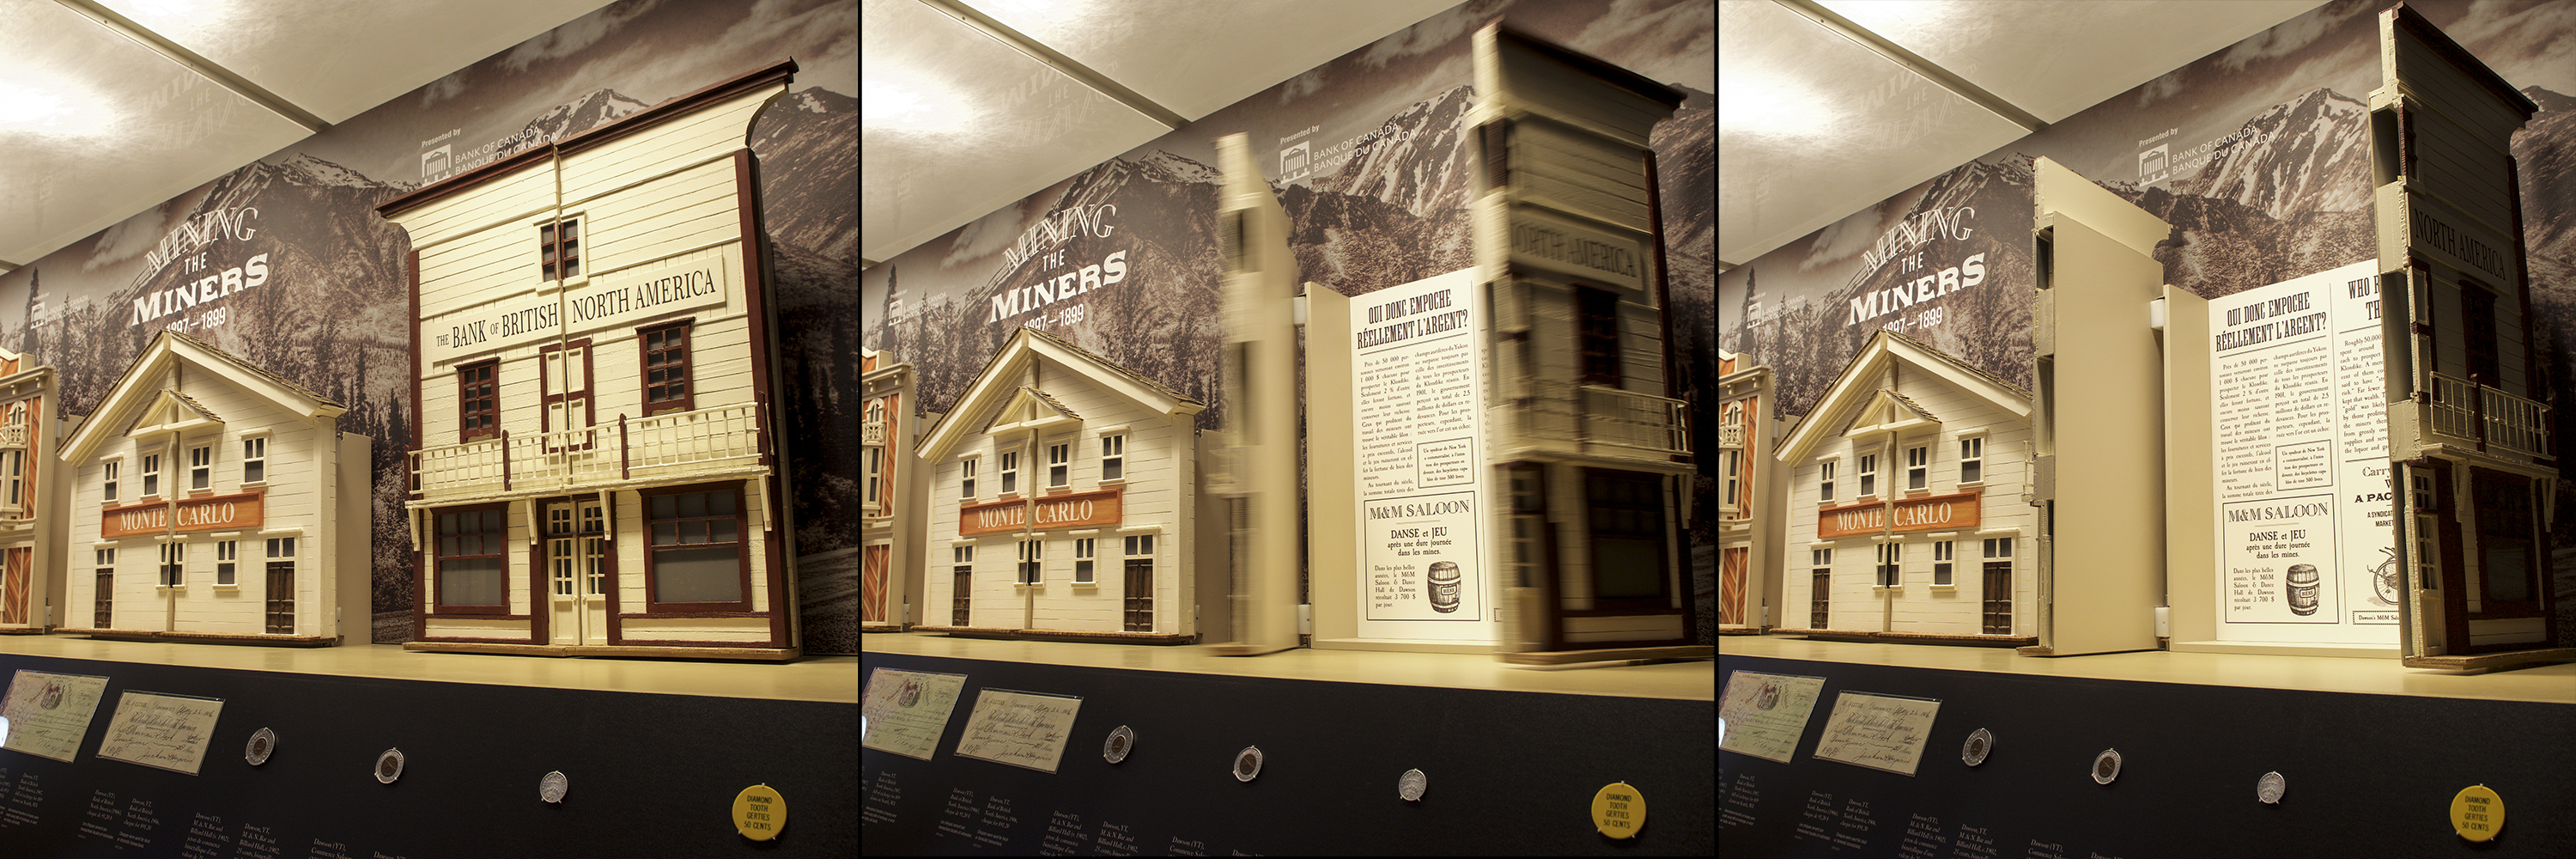 model building with front opening like doors